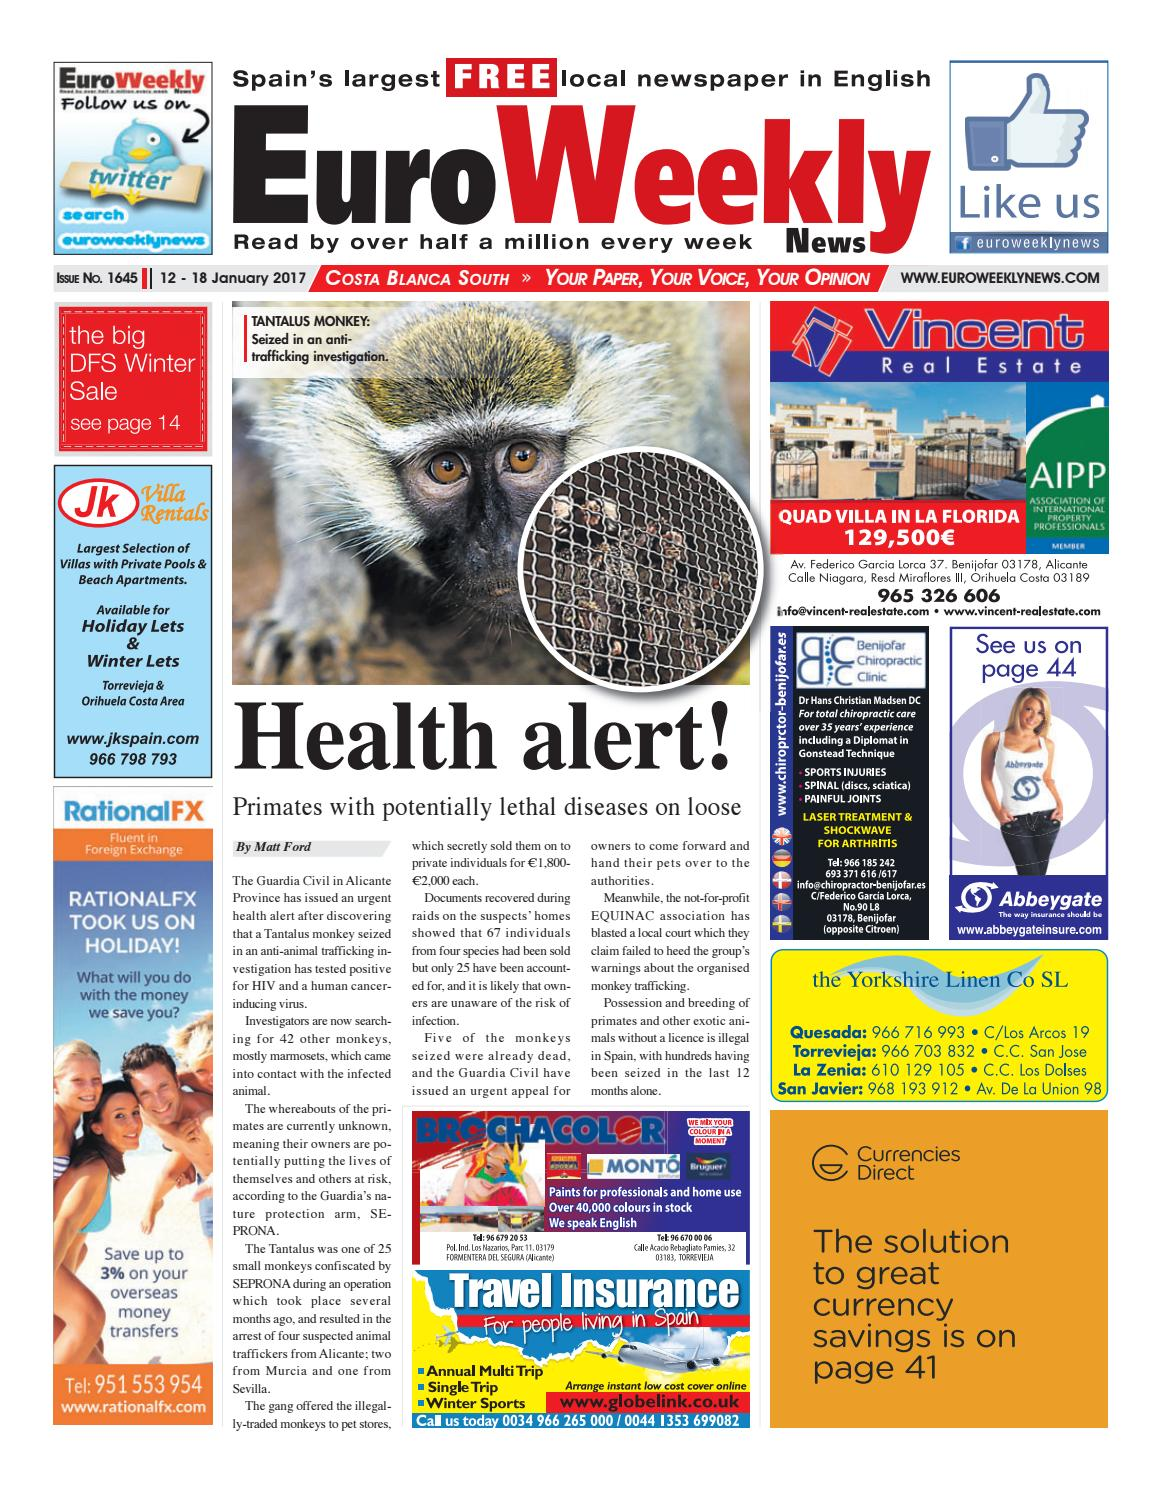 Euro weekly news costa blanca south 12 18 january 2017 issue euro weekly news costa blanca south 12 18 january 2017 issue 1645 by euro weekly news media sa issuu fandeluxe